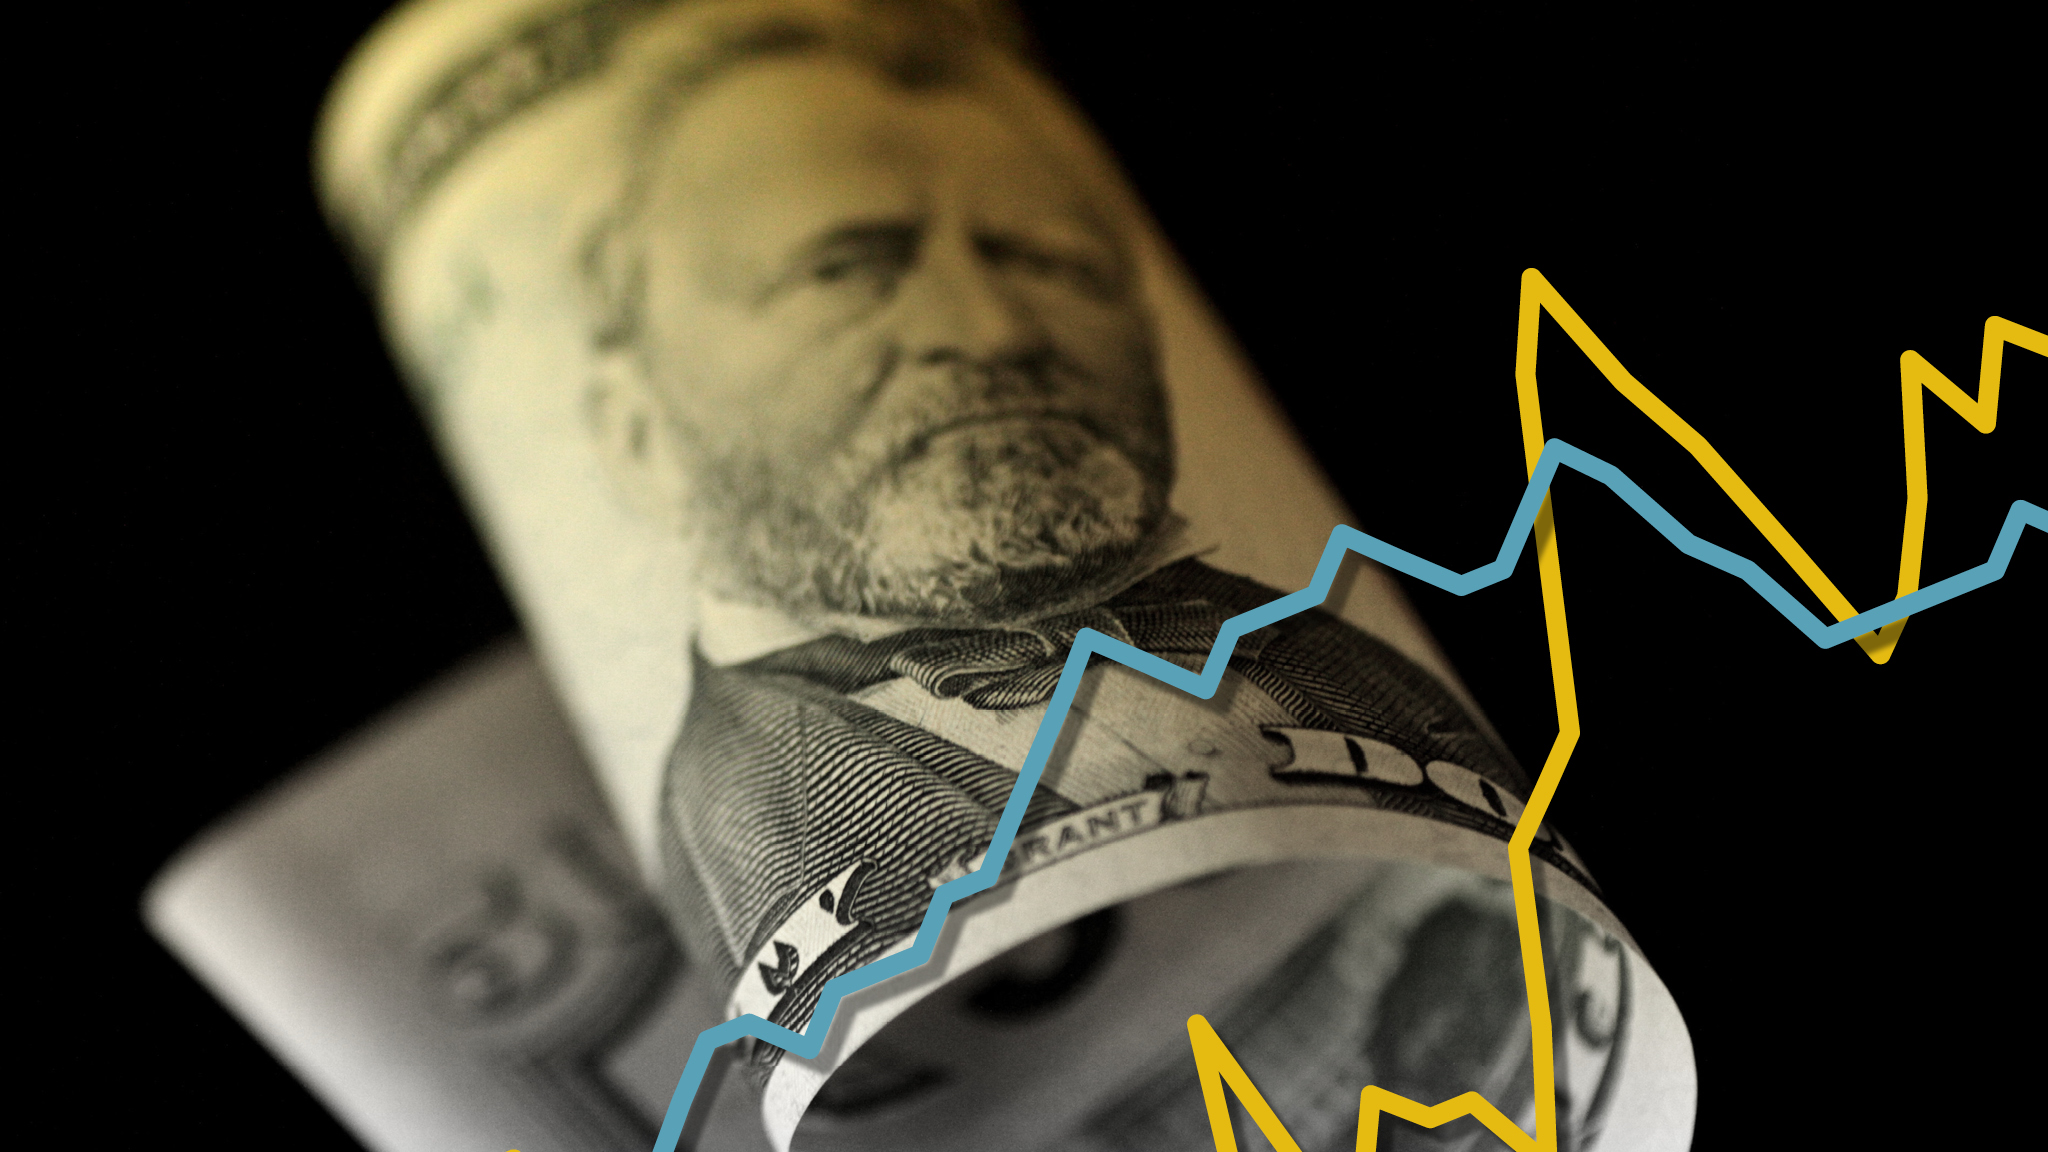 Inflationary pressures on the rise across markets